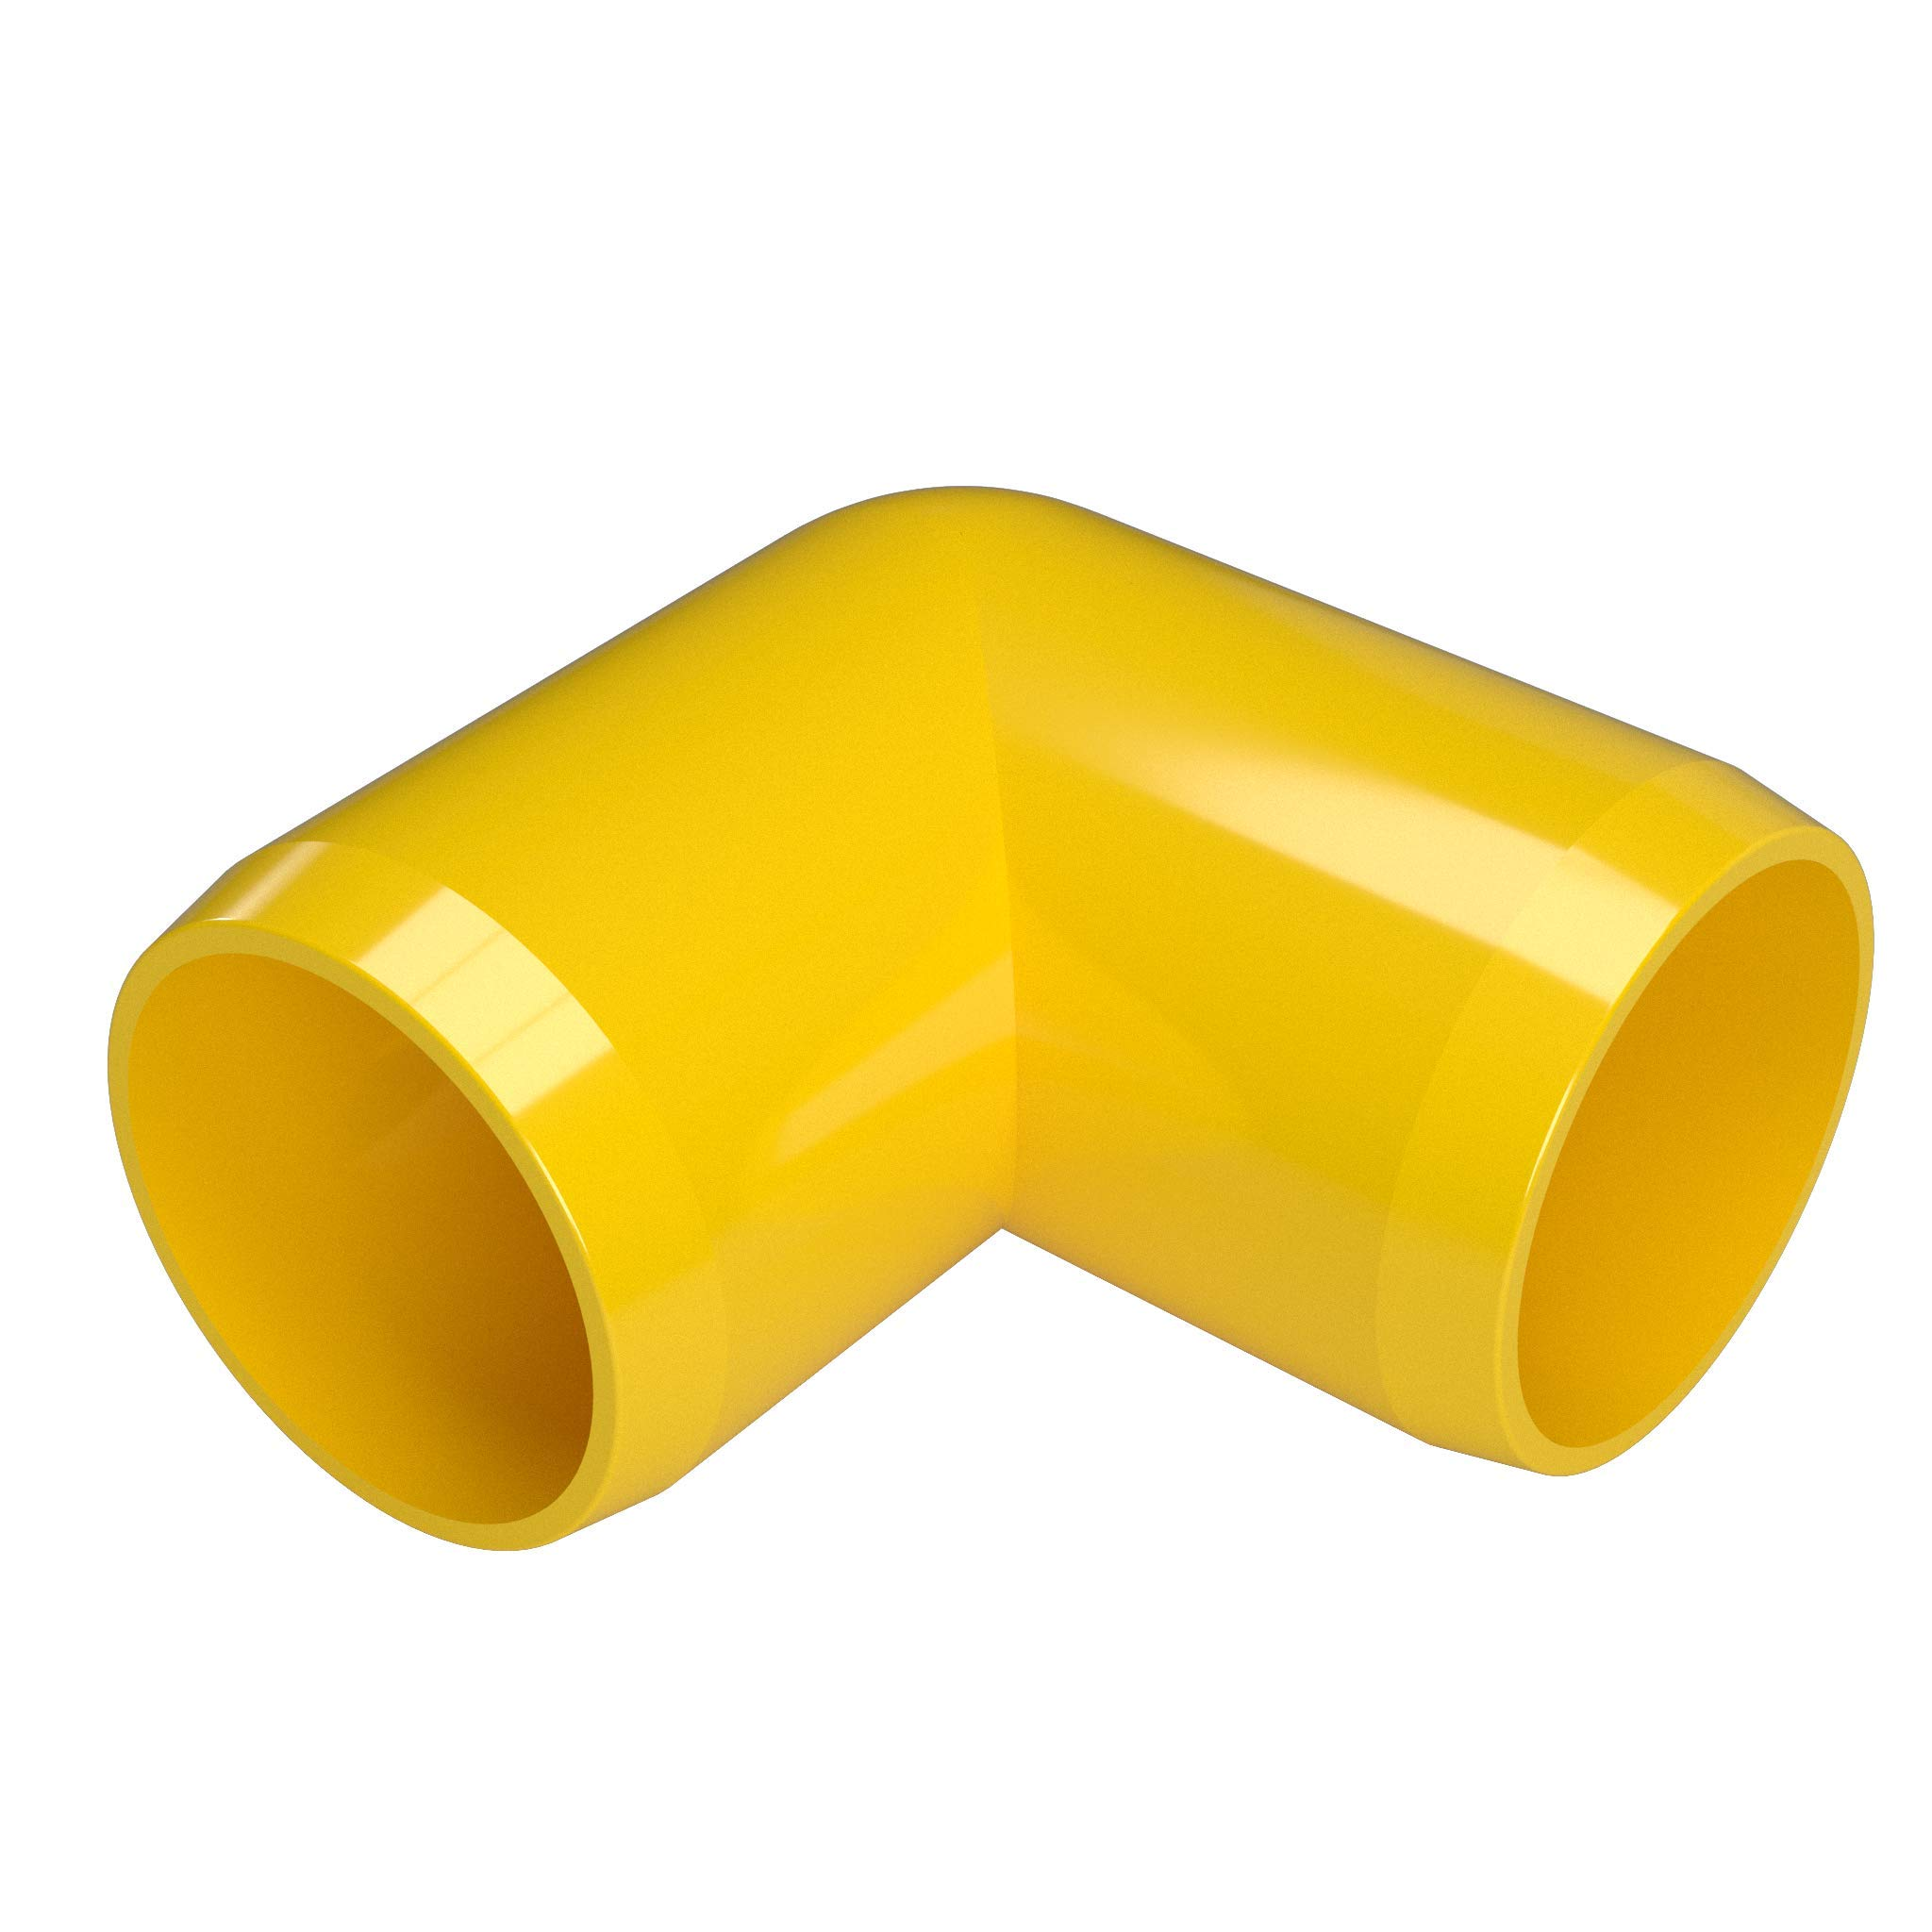 FORMUFIT F00190E-YE-4 90 degree Elbow PVC Fitting, Furniture Grade, 1'' Size, Yellow (Pack of 4)